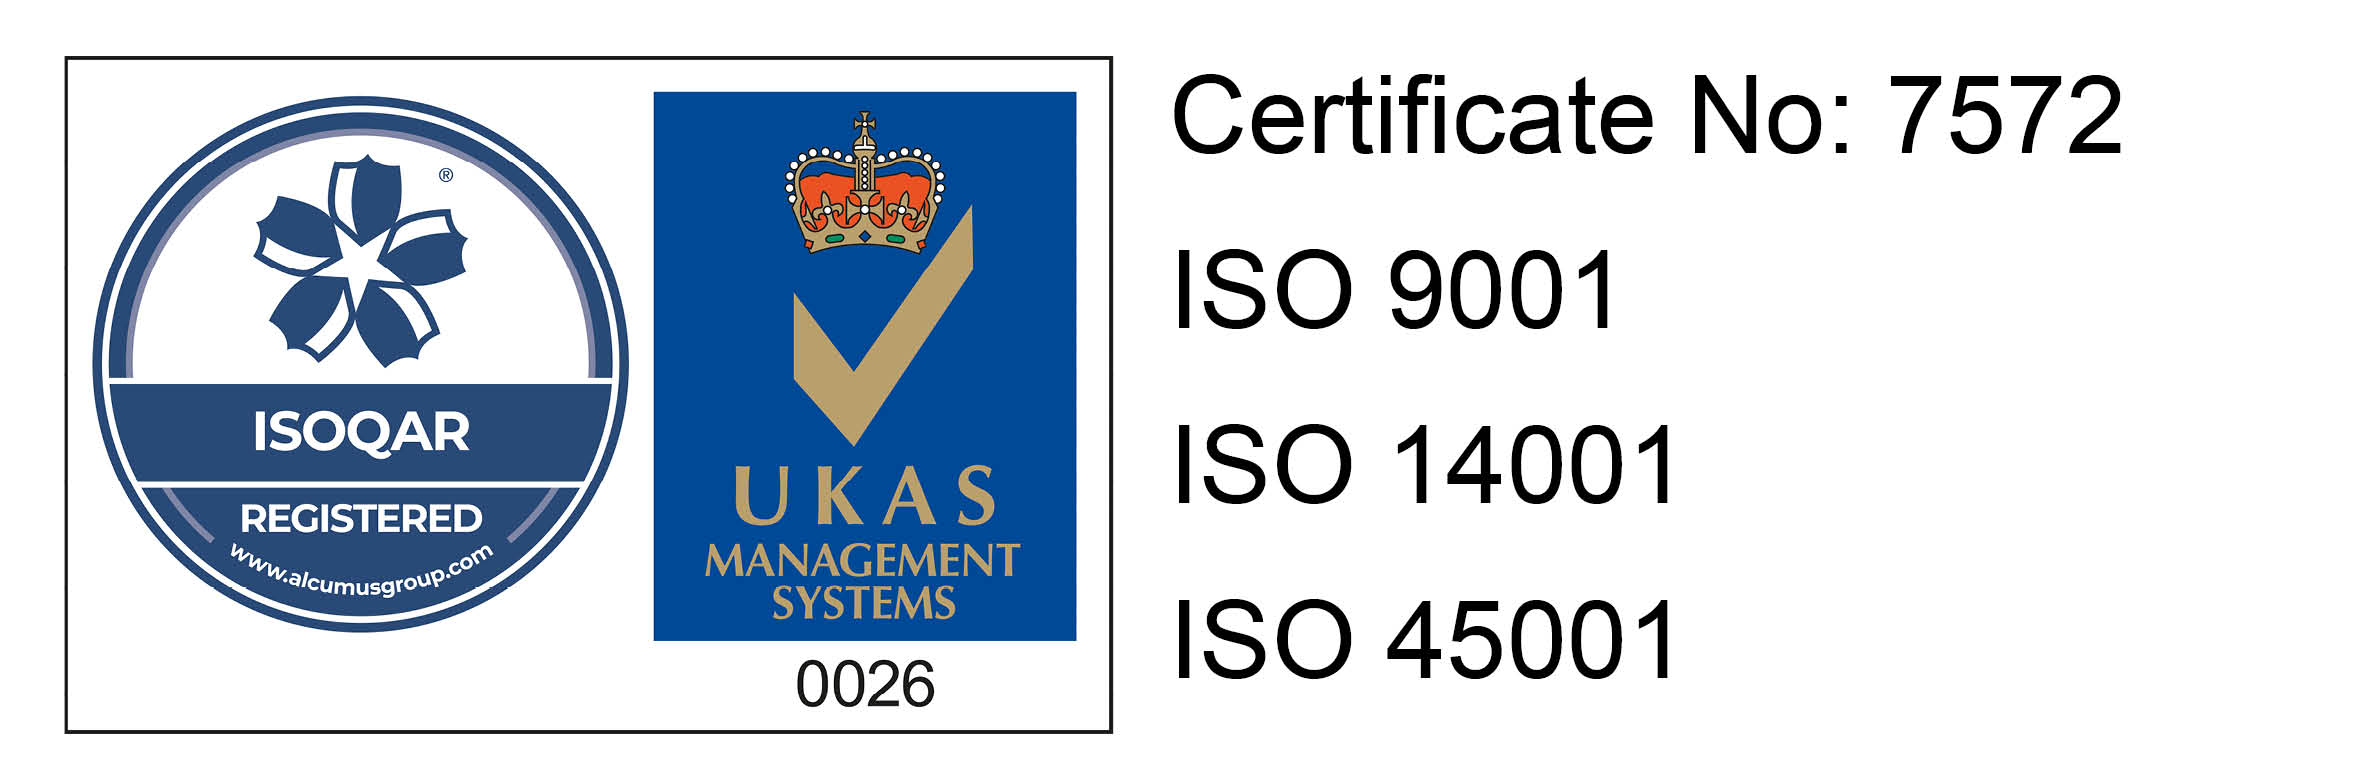 ISOQAR with Gen2 Cert Info